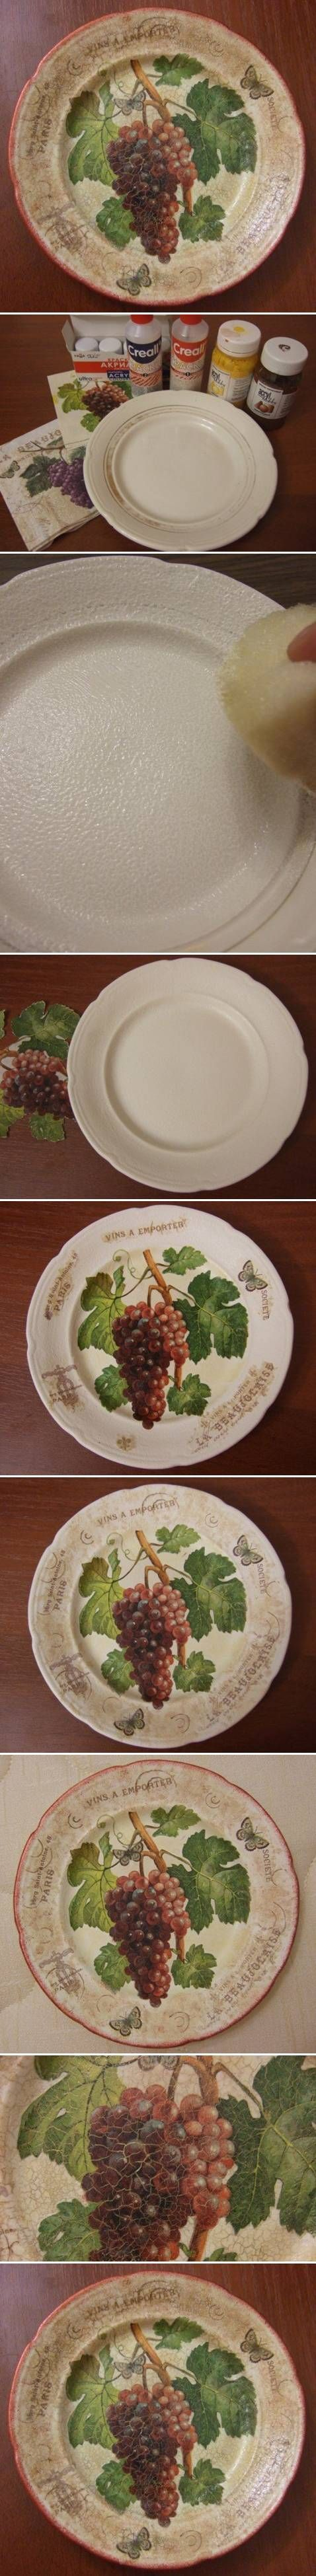 DIY Old Plate Decoupage